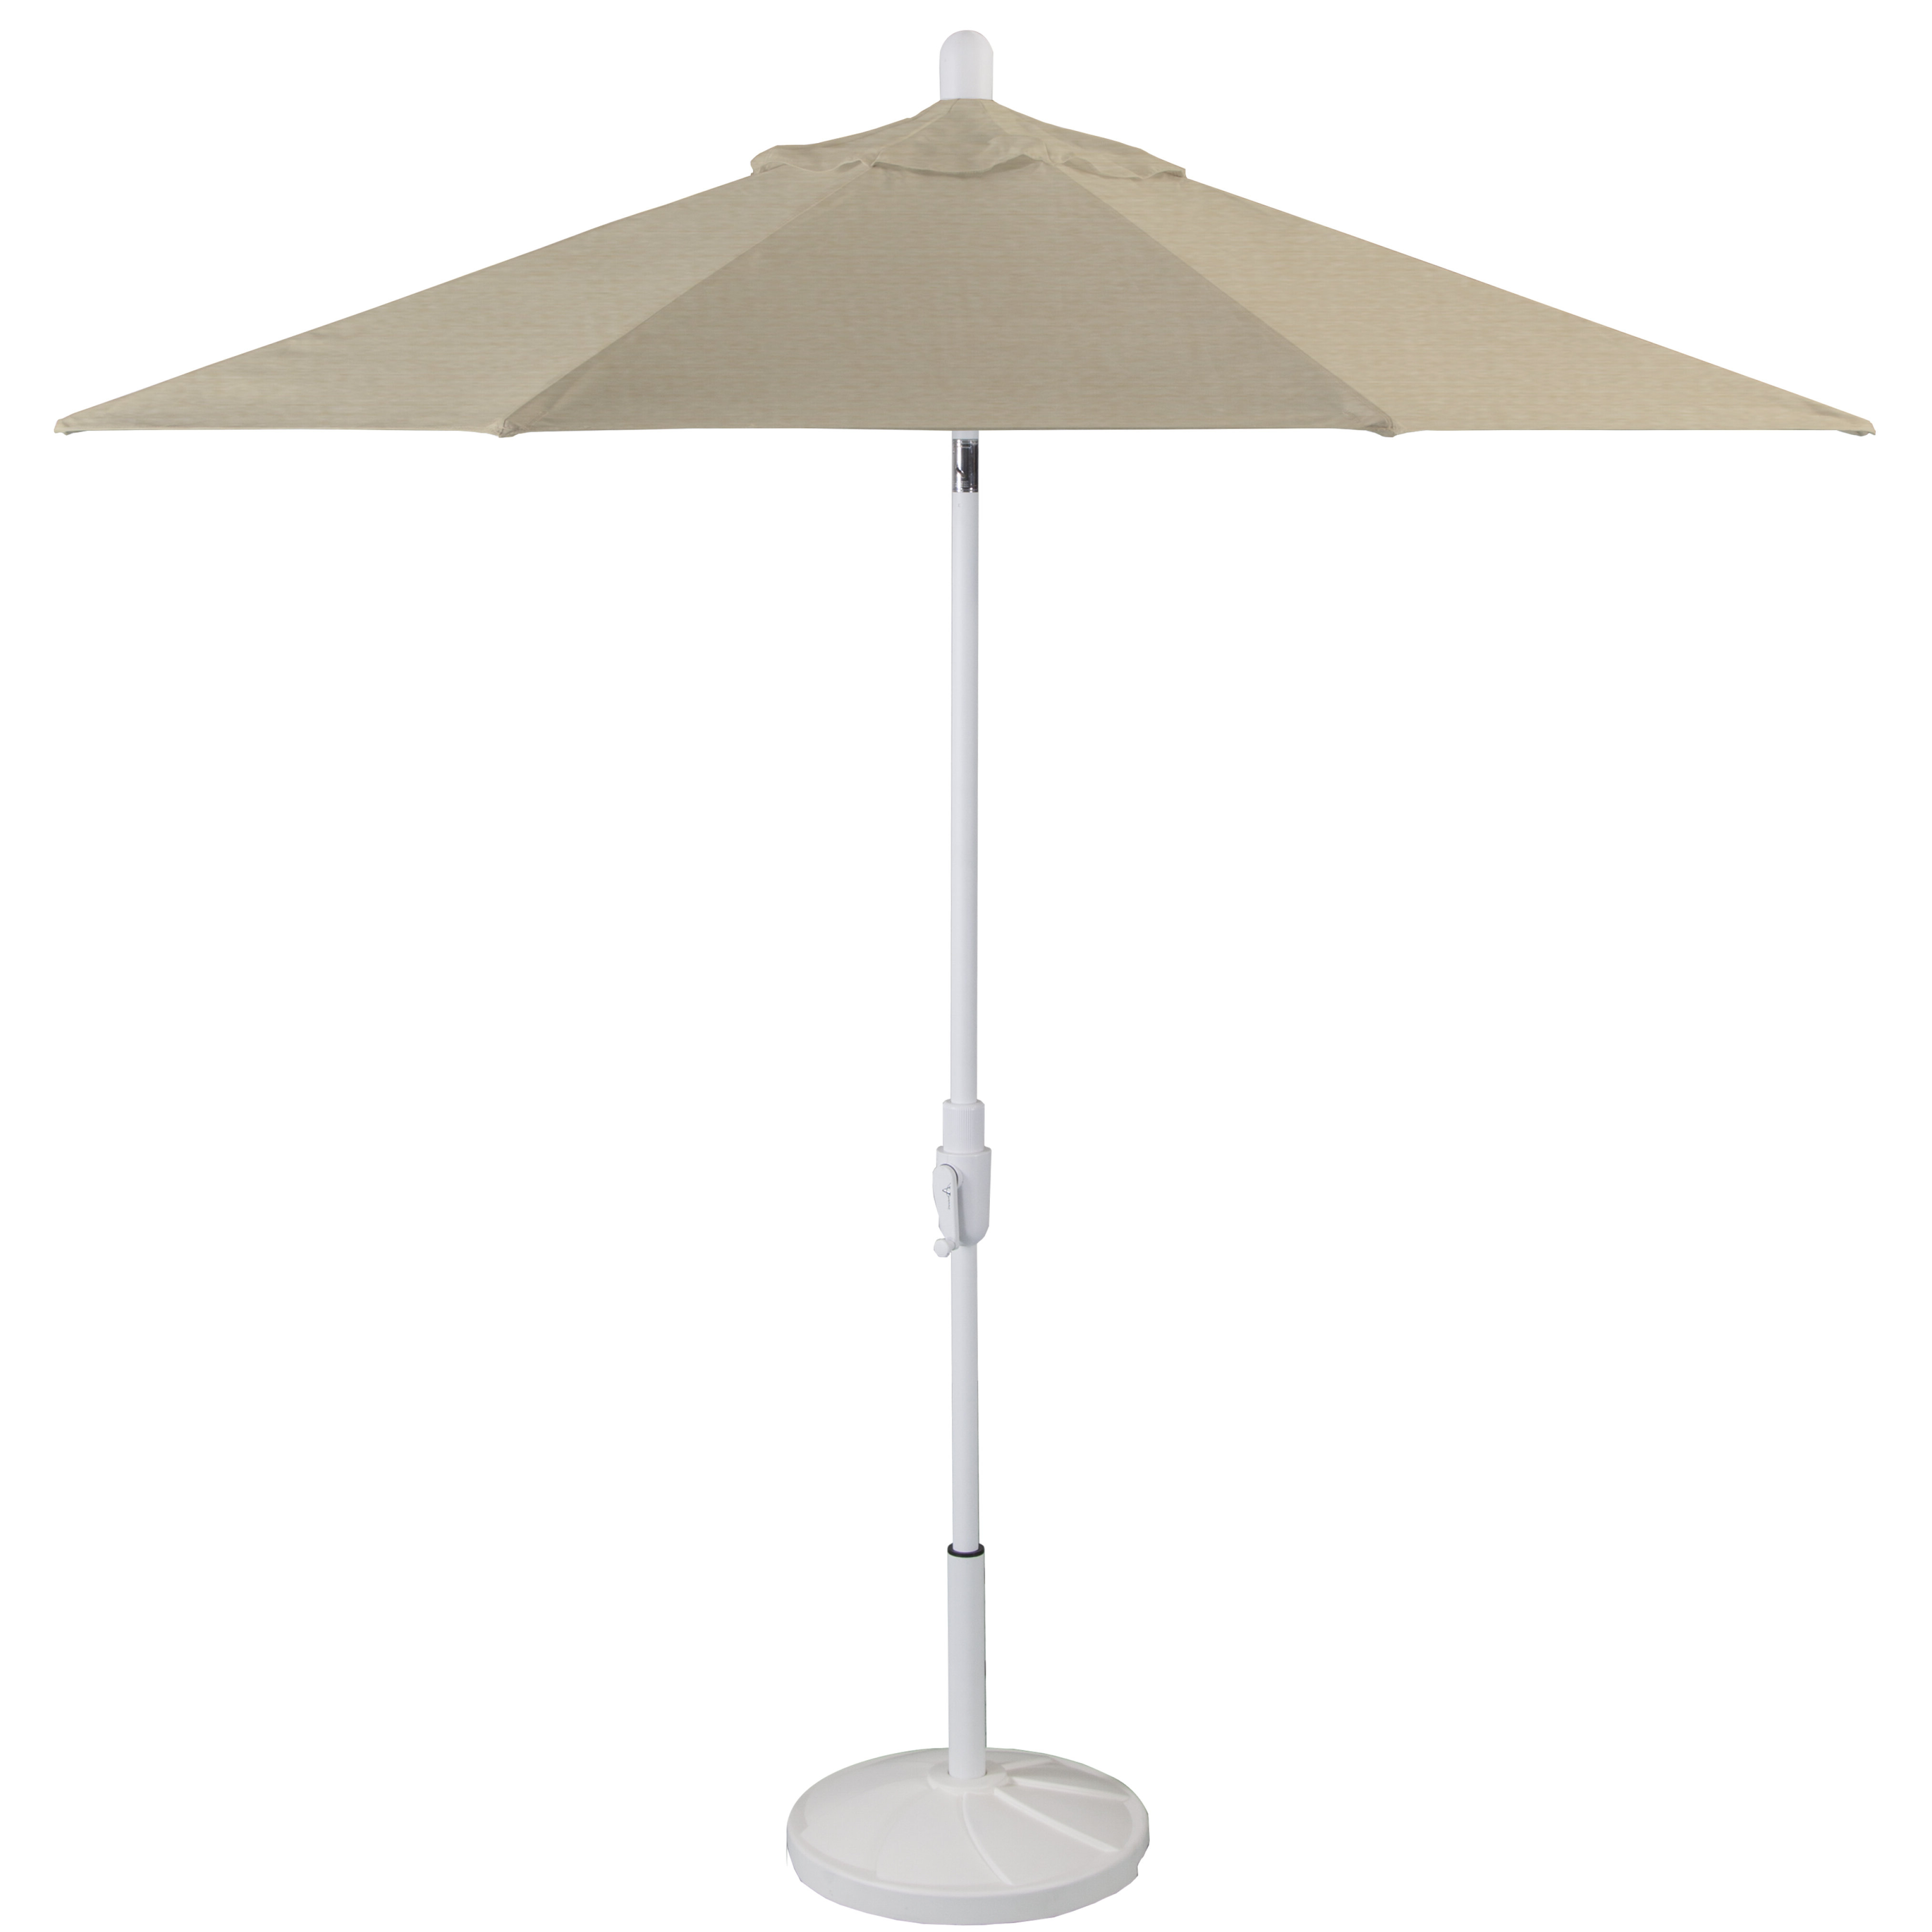 Current Wiebe 9' Market Sunbrella Umbrella Intended For Wiebe Market Sunbrella Umbrellas (View 4 of 20)